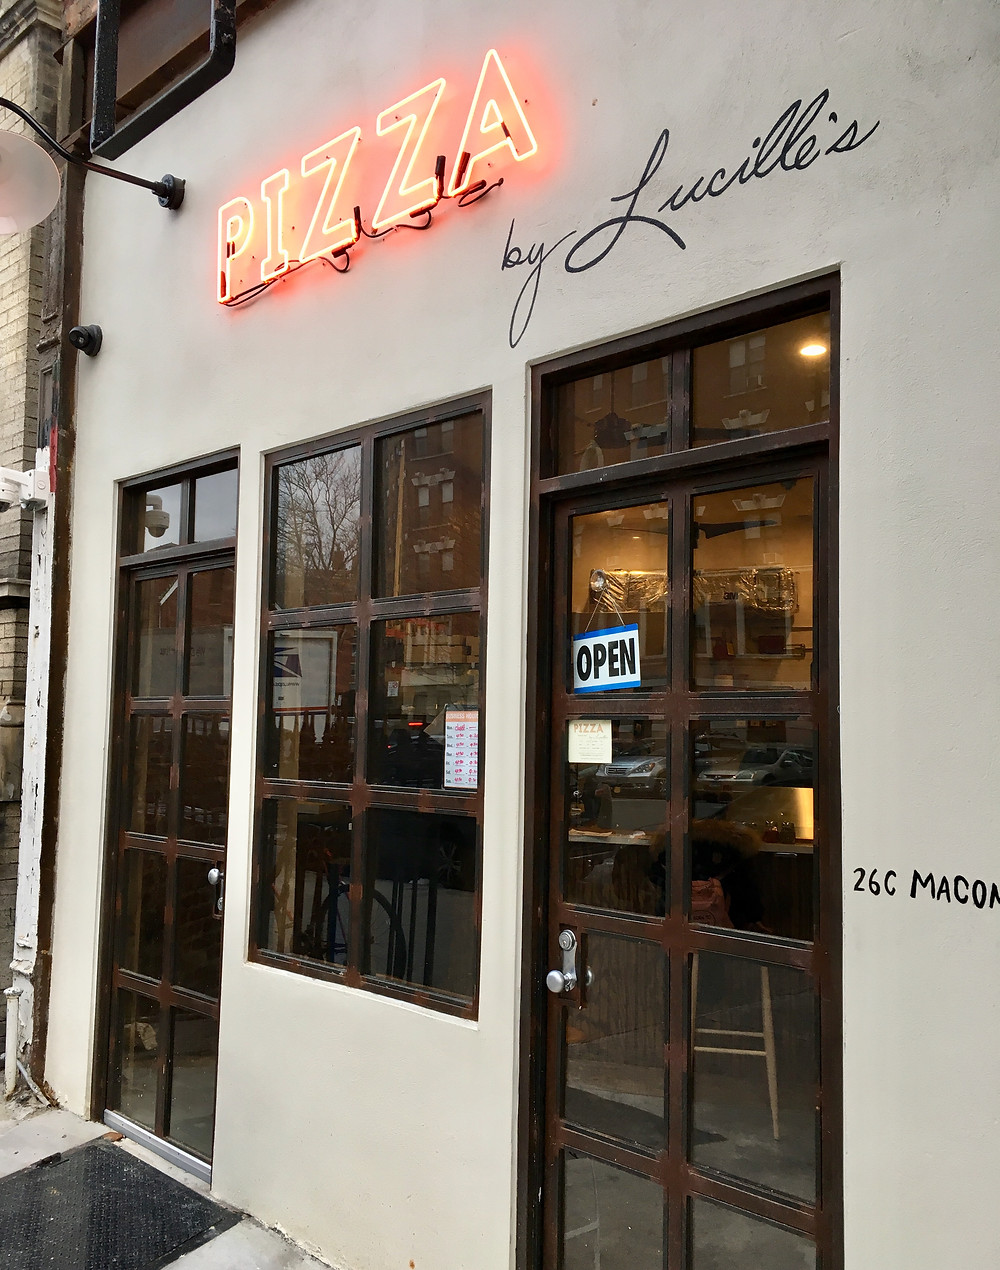 Matthew Trebek and co. open Pizza by Lucille's